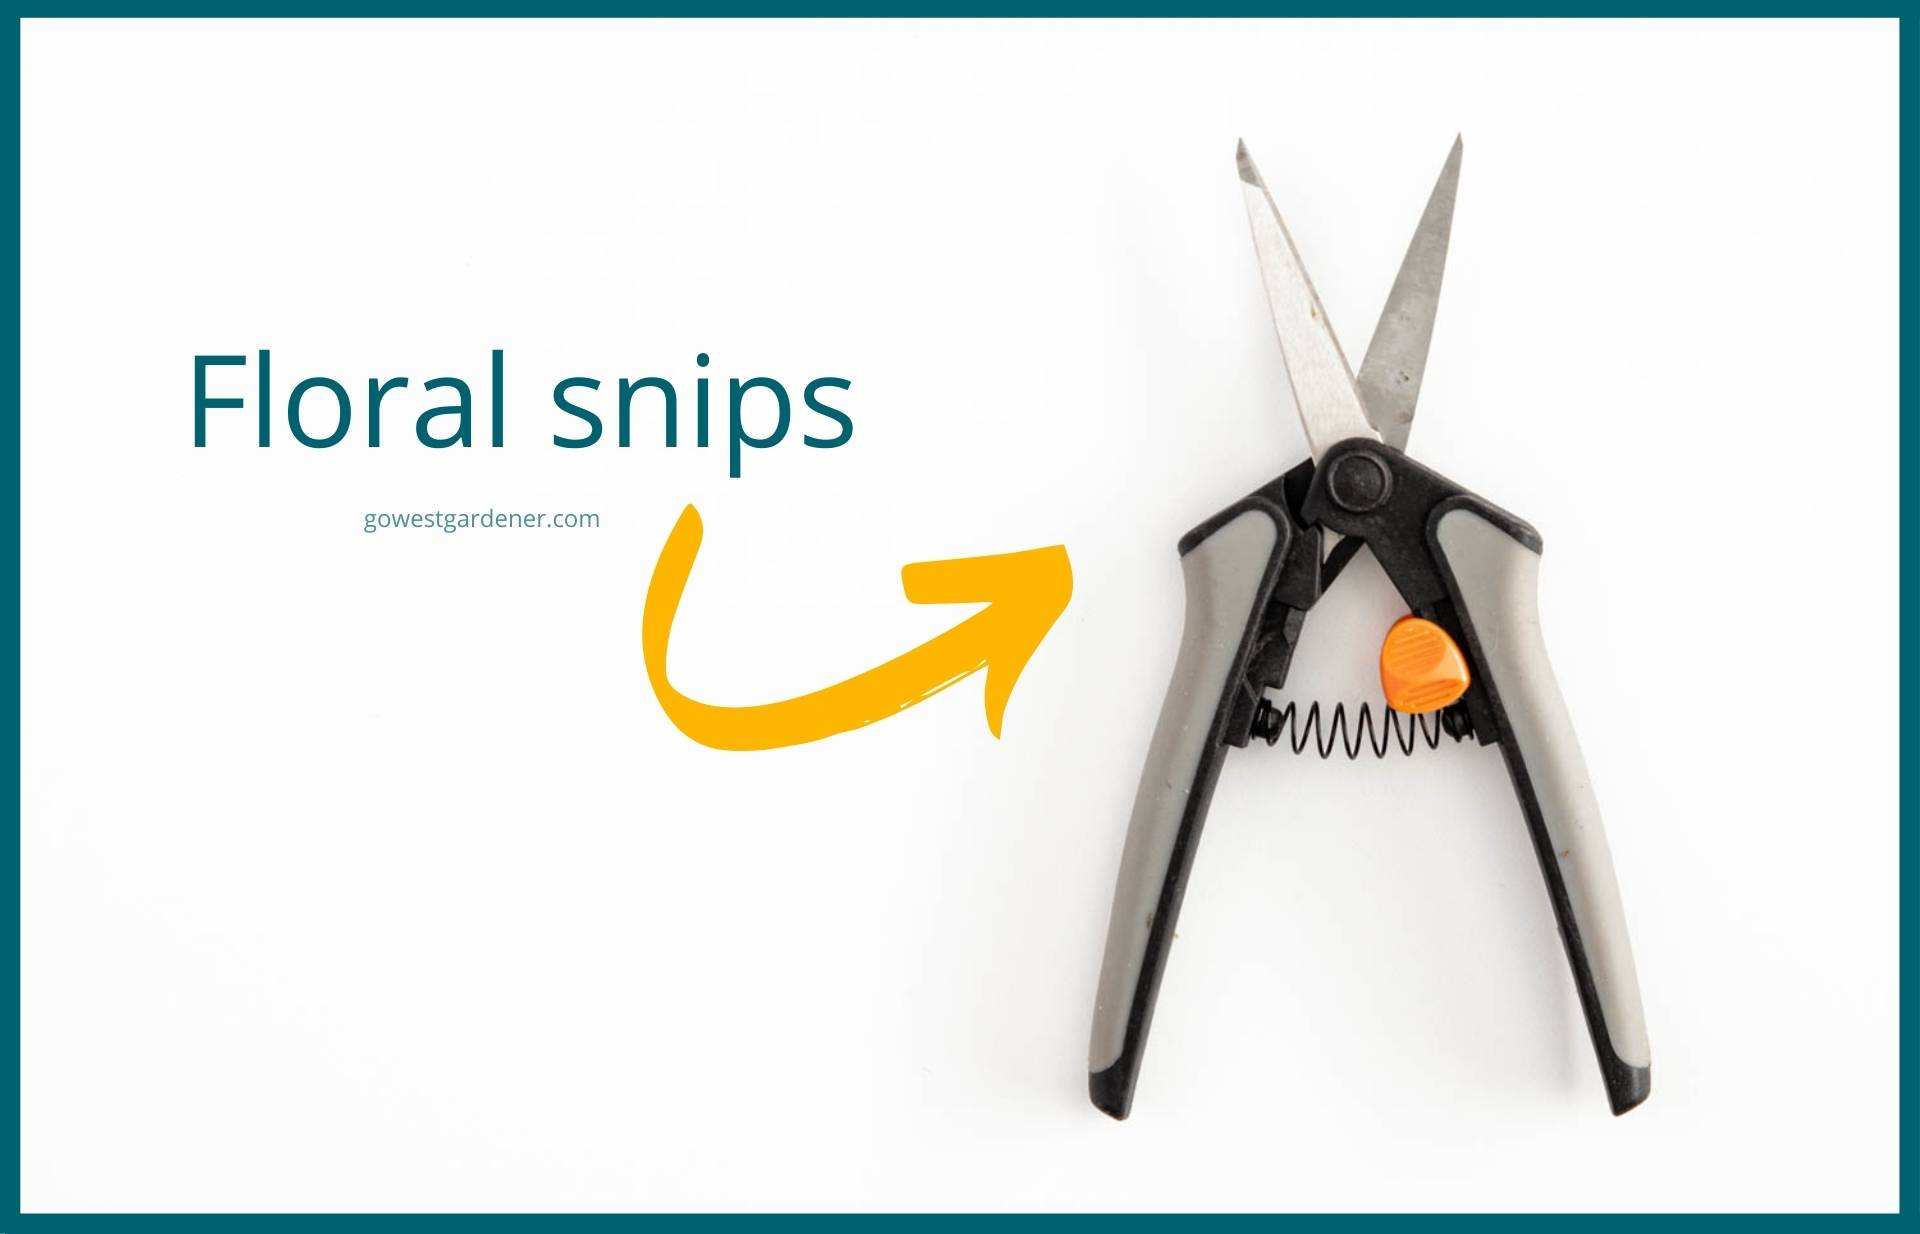 This is what floral snips look like for trimming dead blooms off flowers, known as deadheading